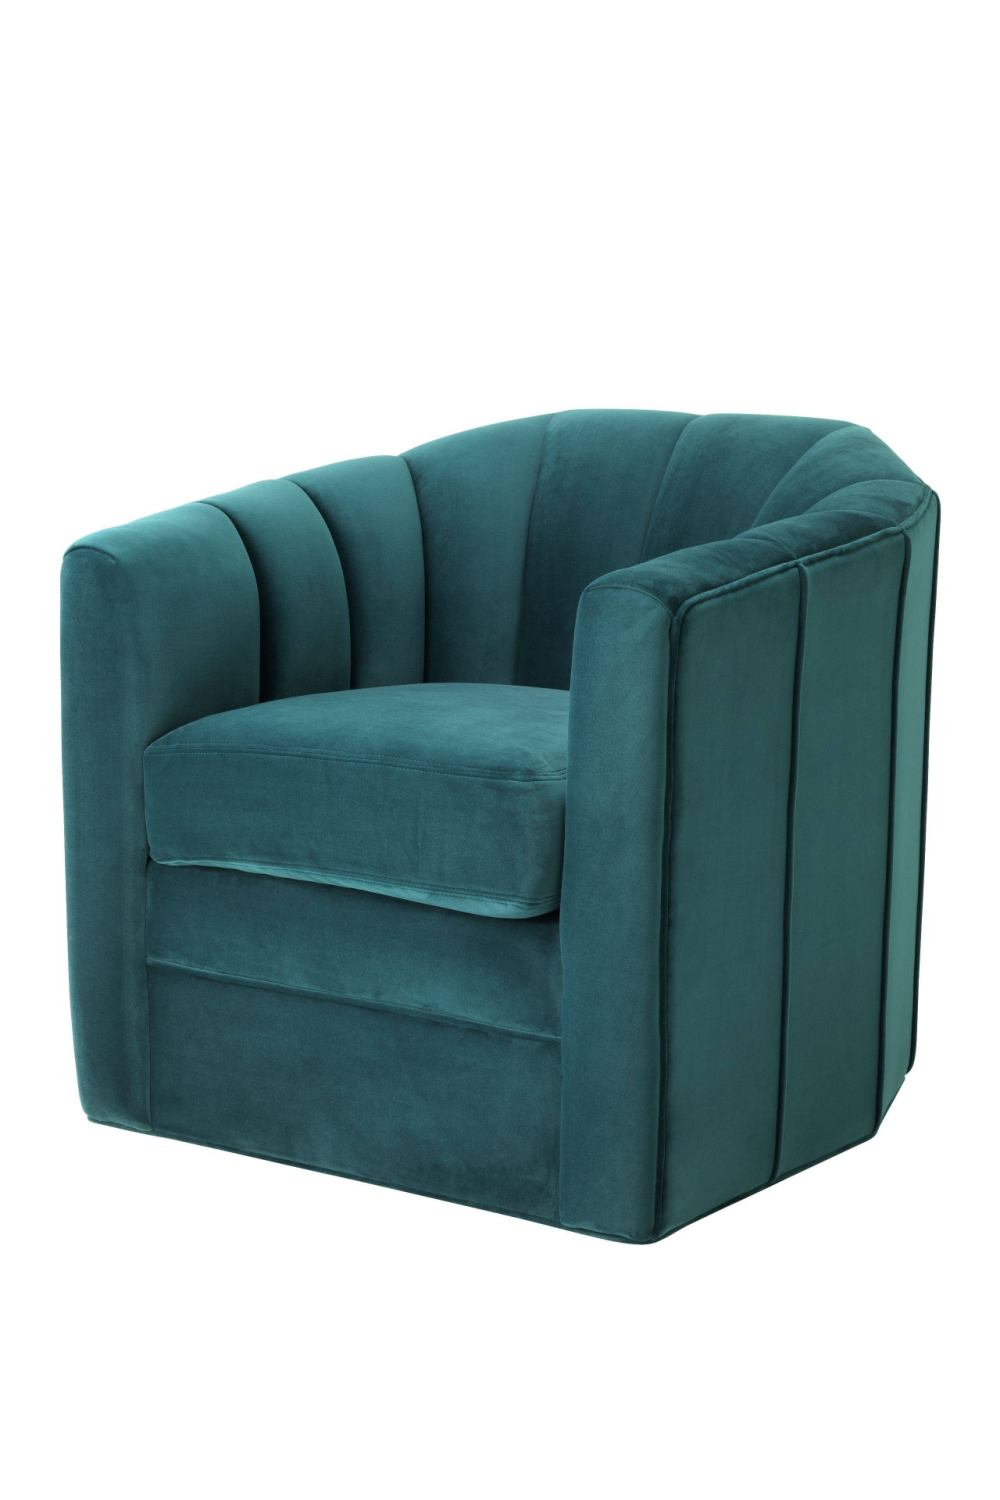 Sea Green Velvet Swivel Chair | Eichholtz Delancey | OROA Furniture